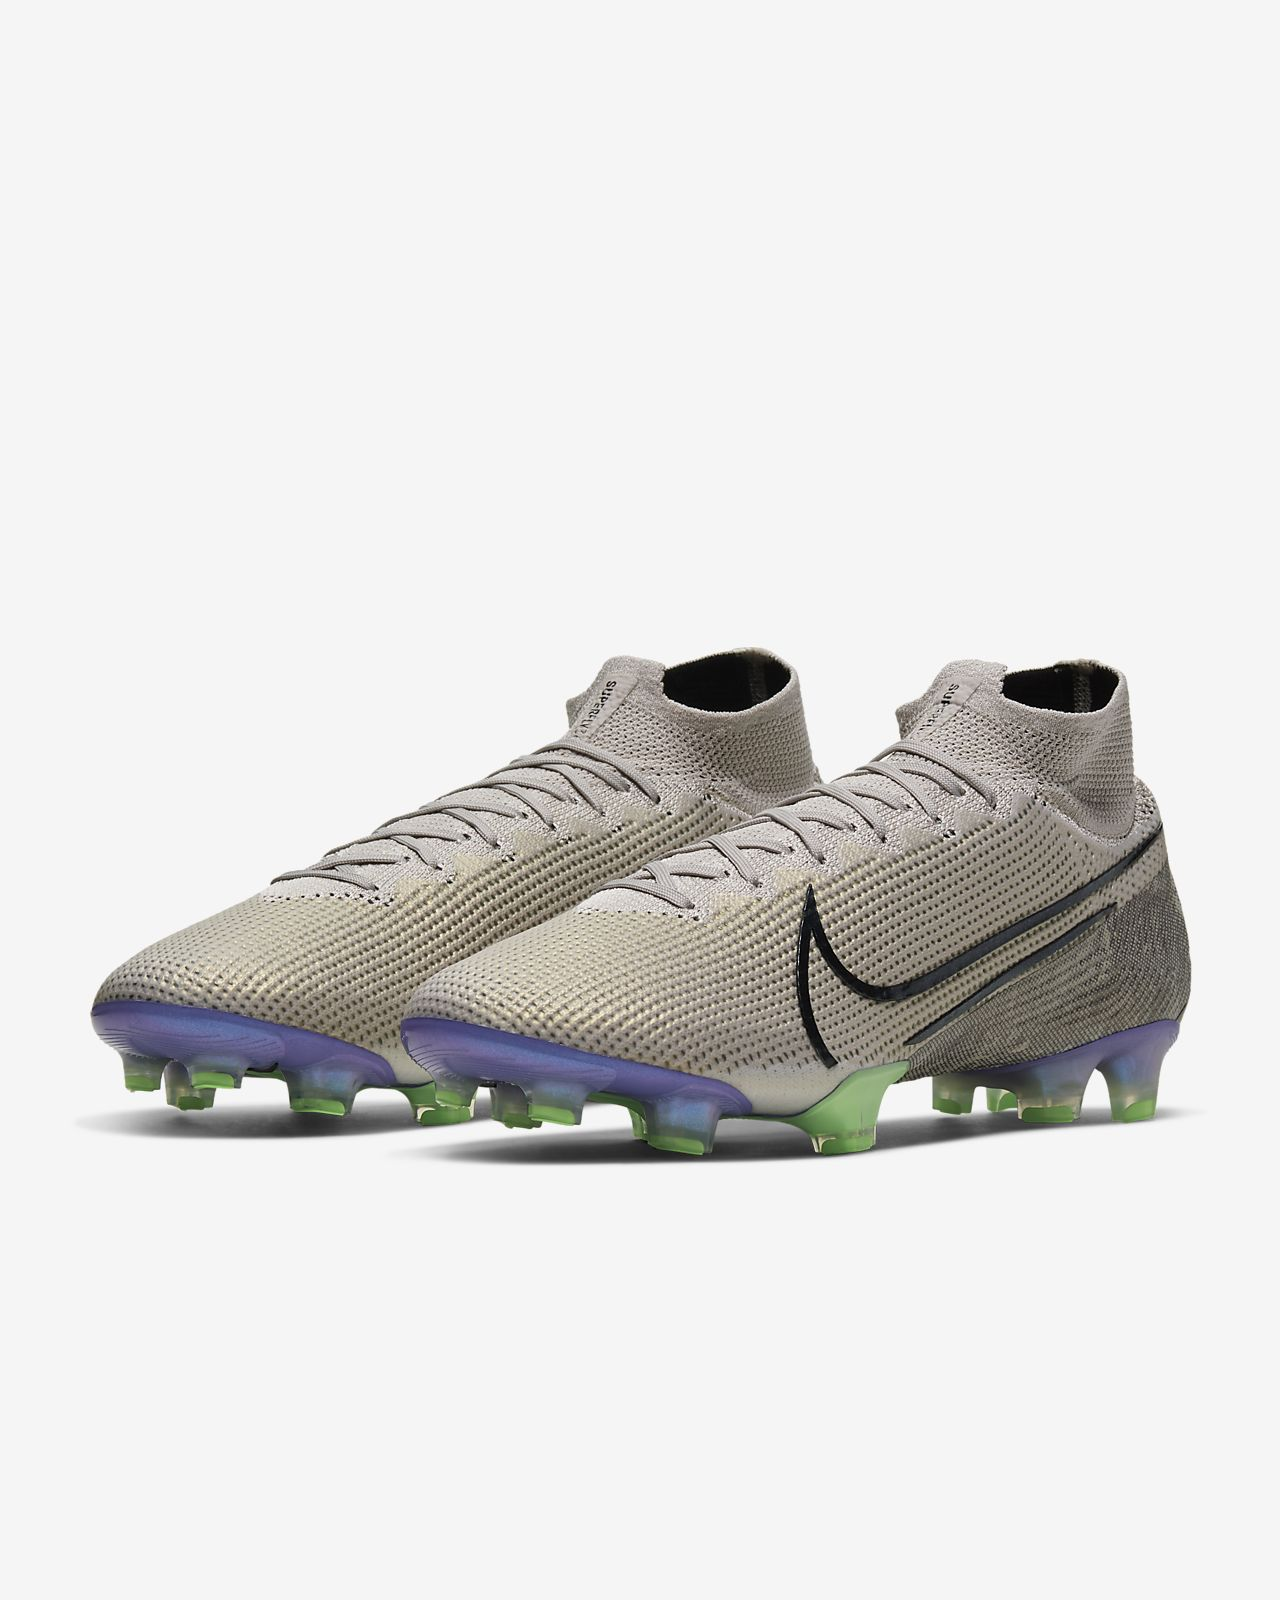 Nike Mercurial Superfly 7 Elite FG Firm Ground Soccer Cleat